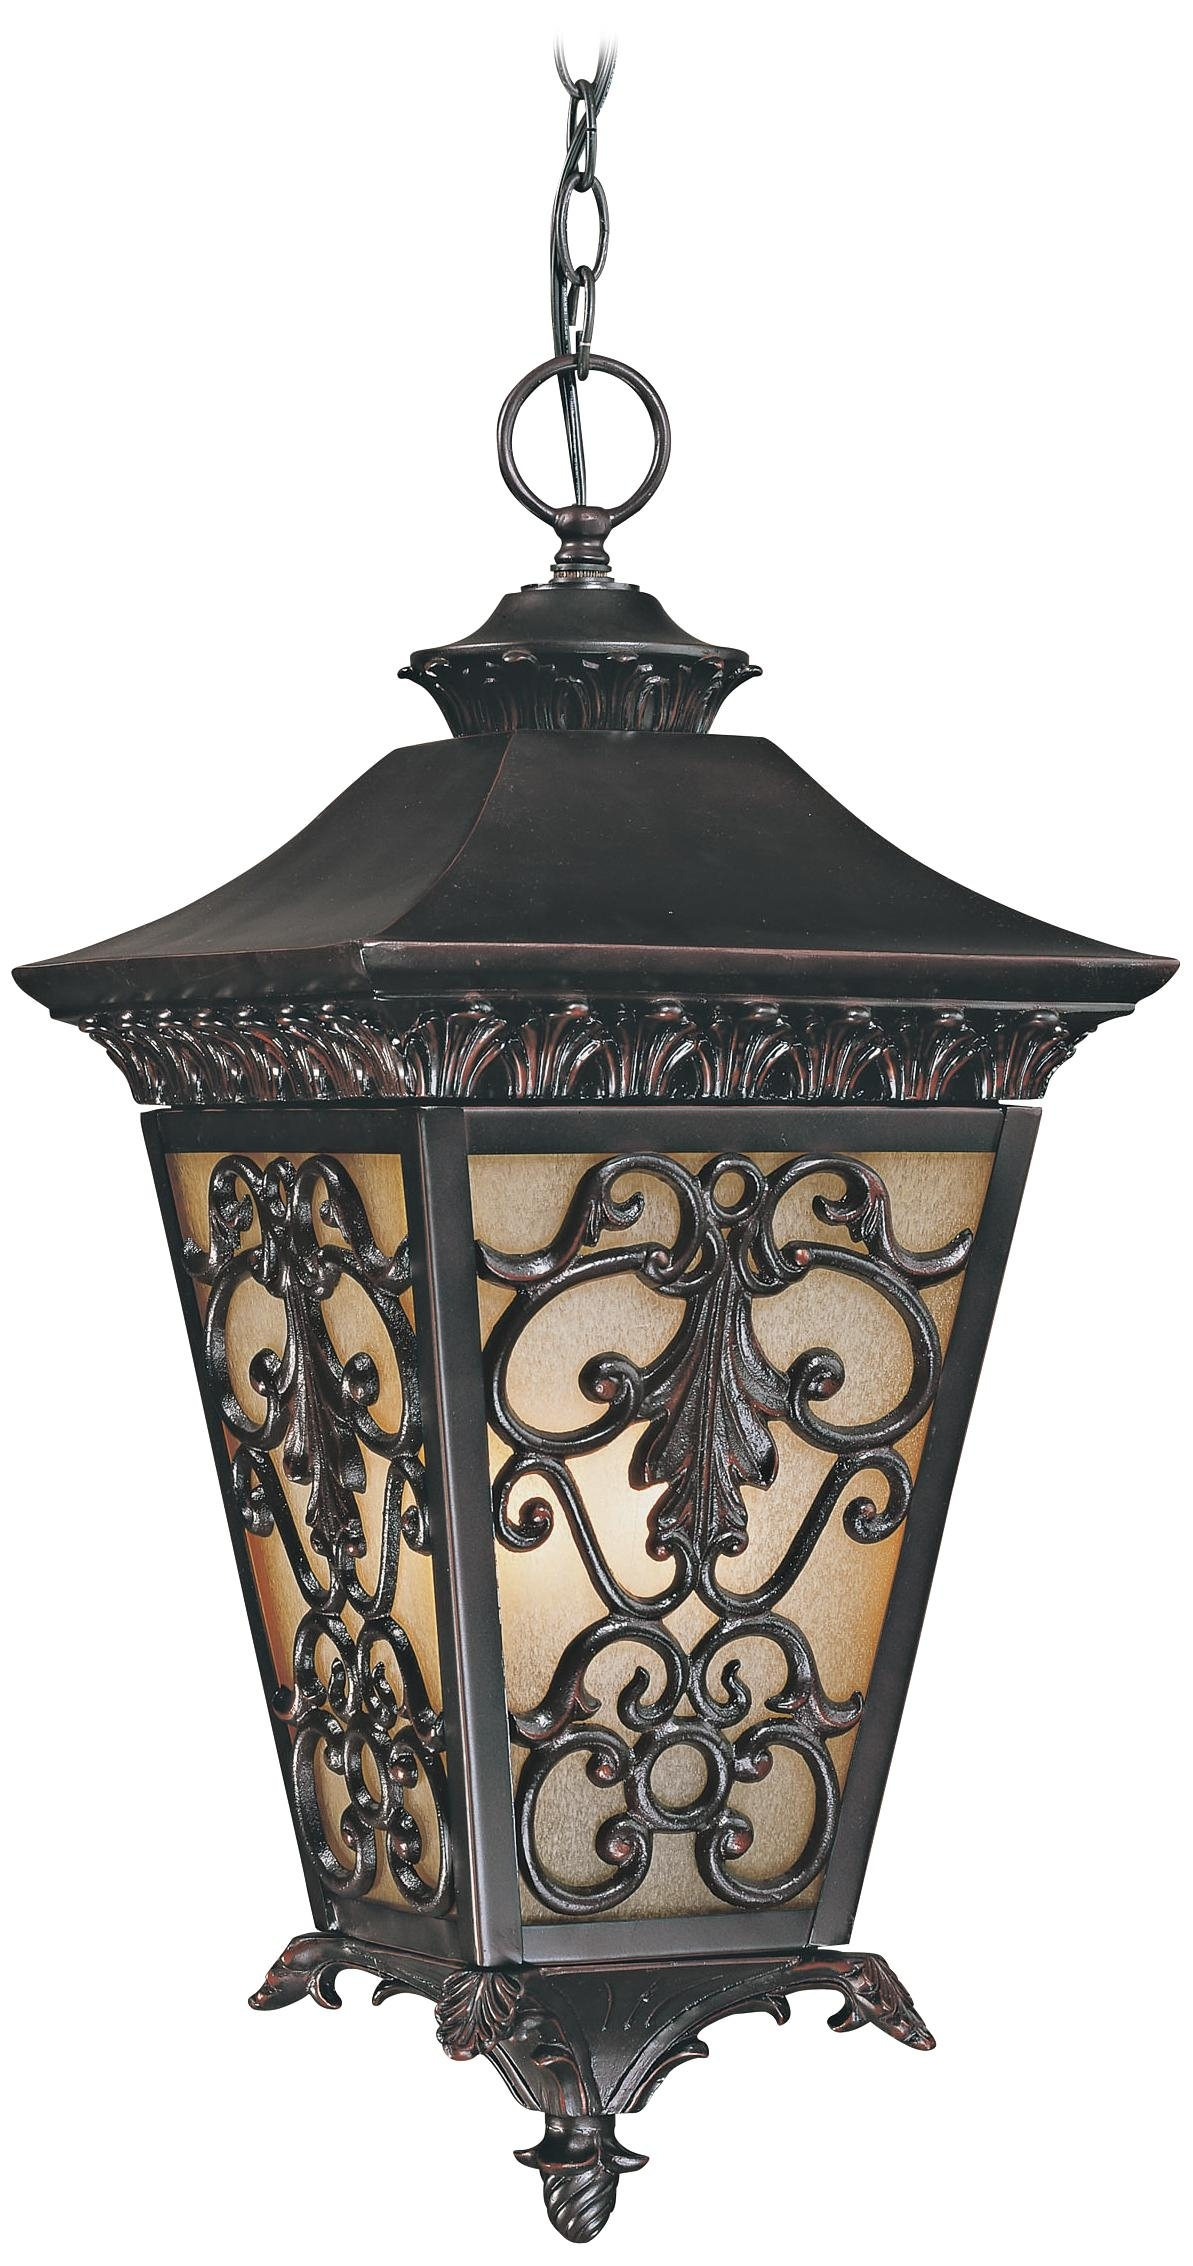 Bientina Collection 23 1/4 High Outdoor Hanging Light – | Tuscan Old In Outdoor Hanging Lights (View 9 of 15)